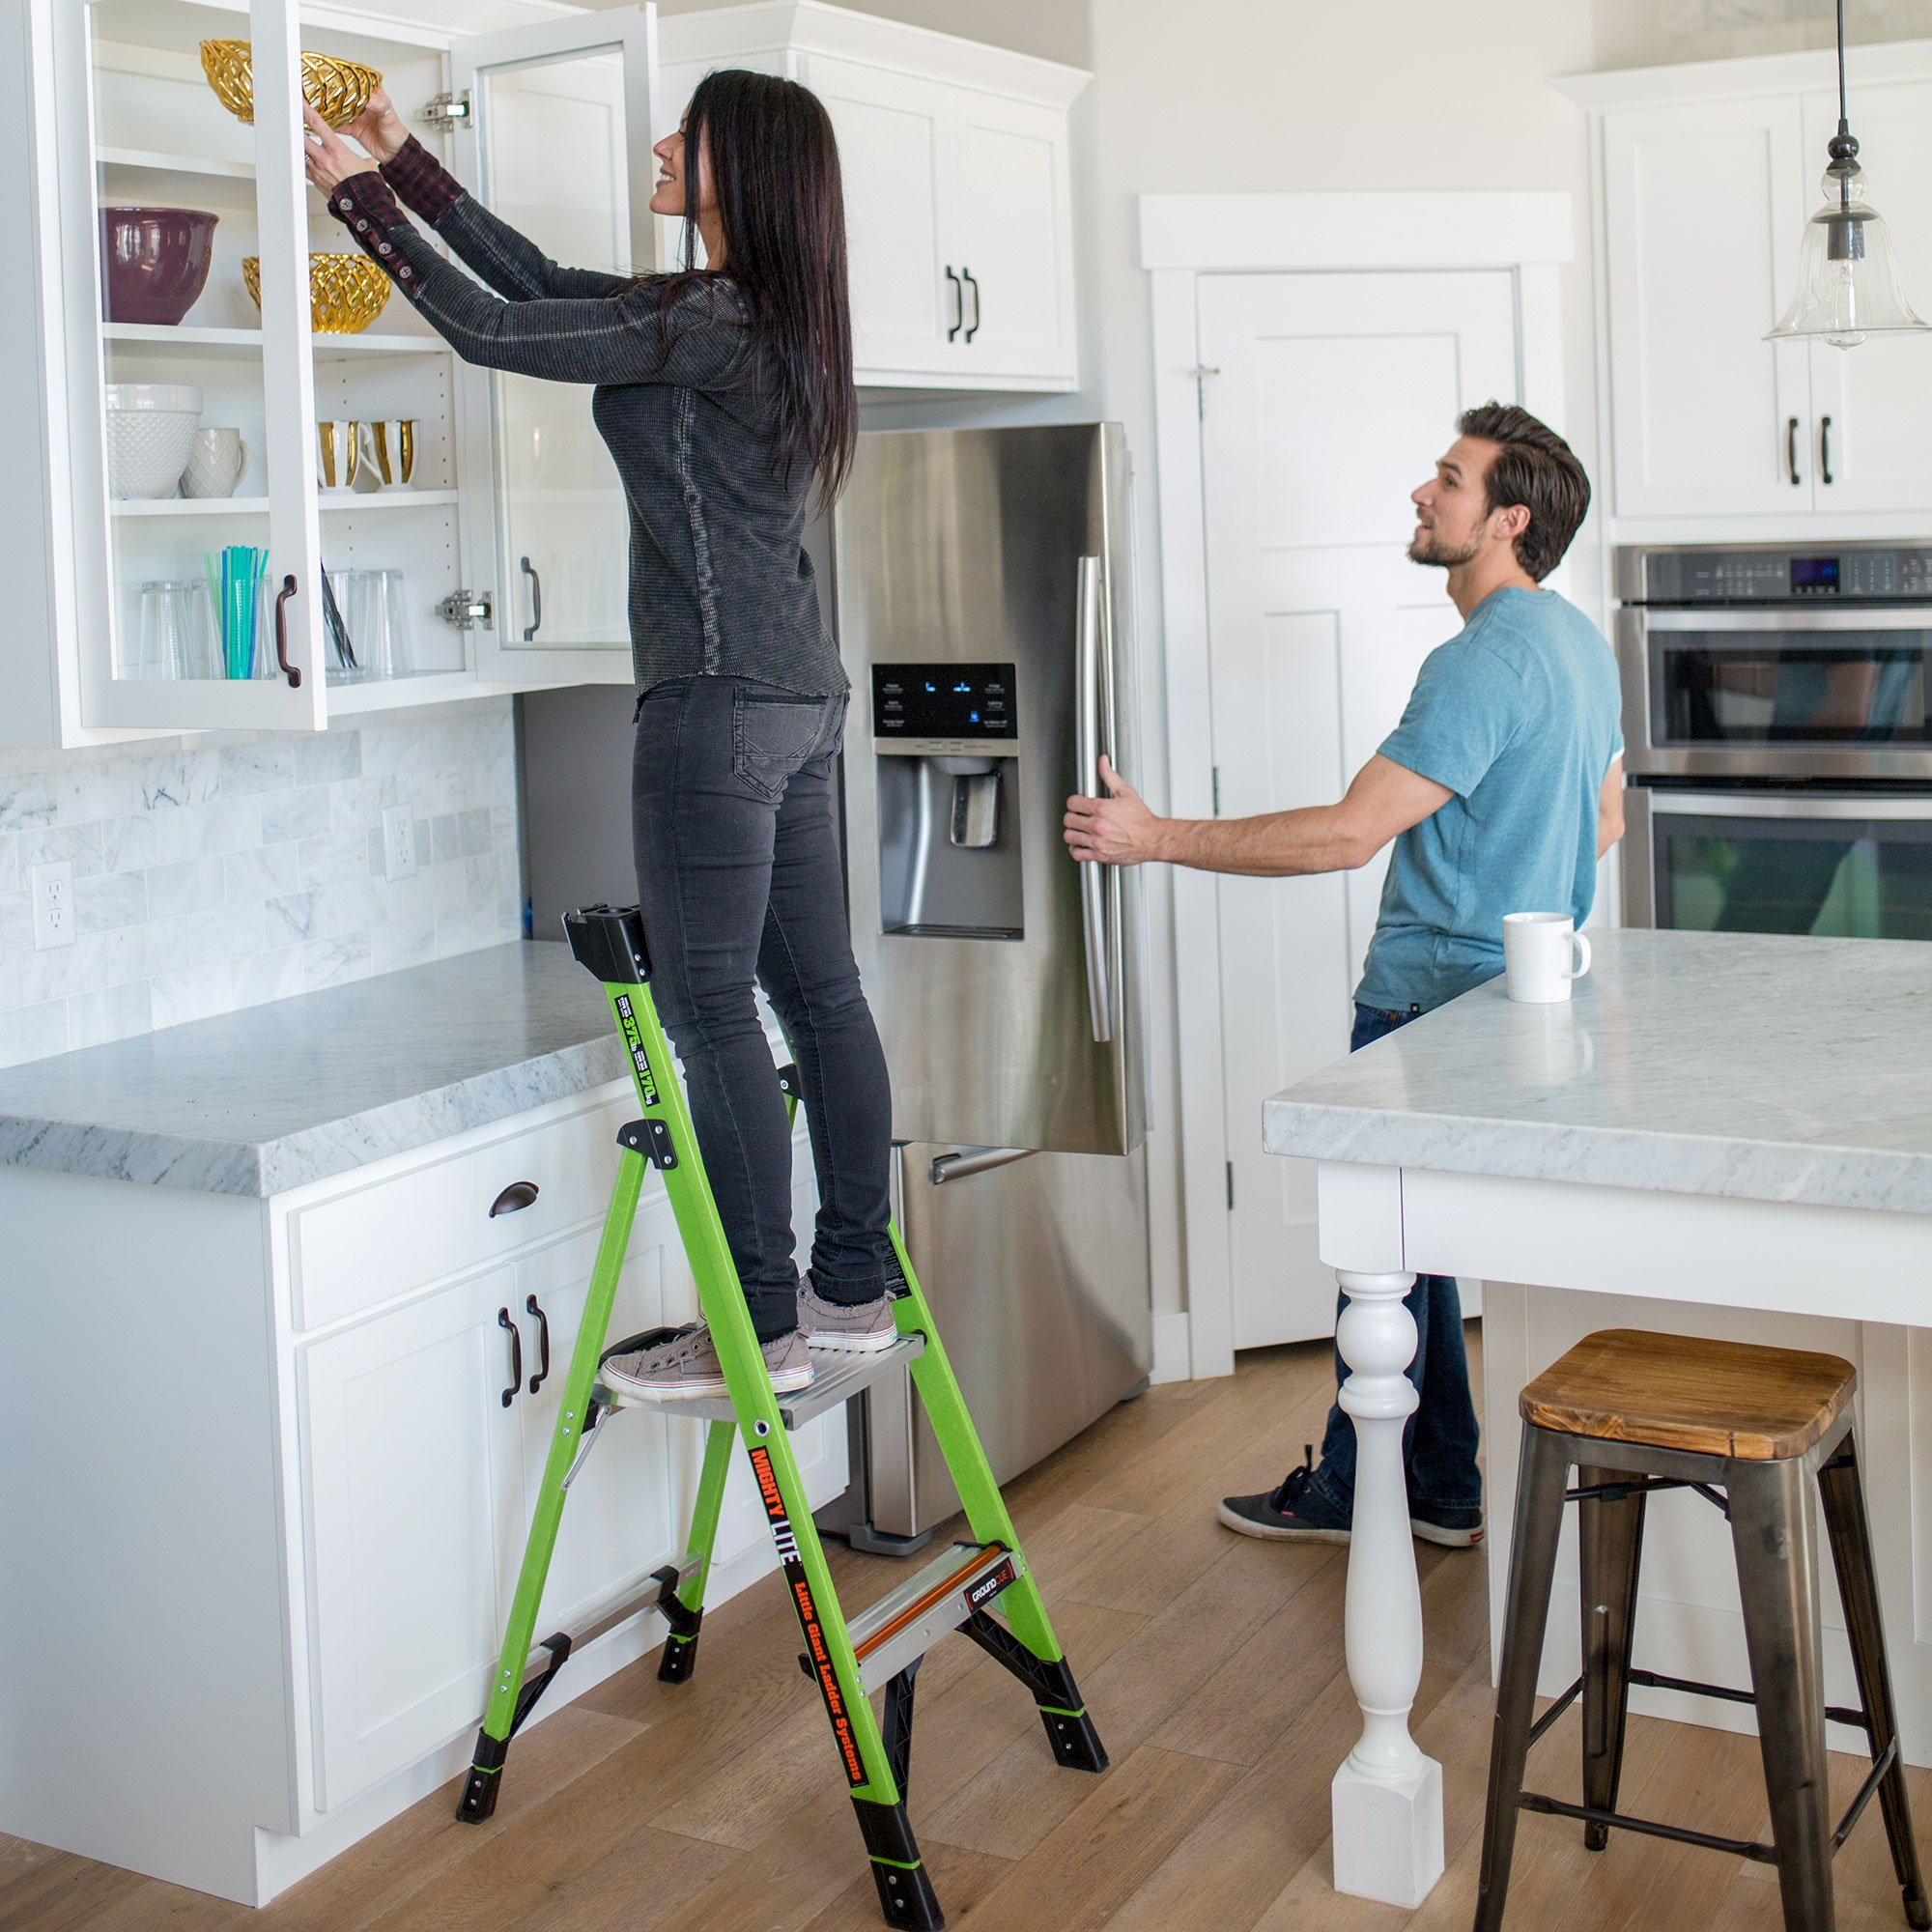 Little Giant Ladder Systems 15364-001 Mightylite 4 4, 4' IA 4 Step Ladder by Little Giant Ladder Systems (Image #6)